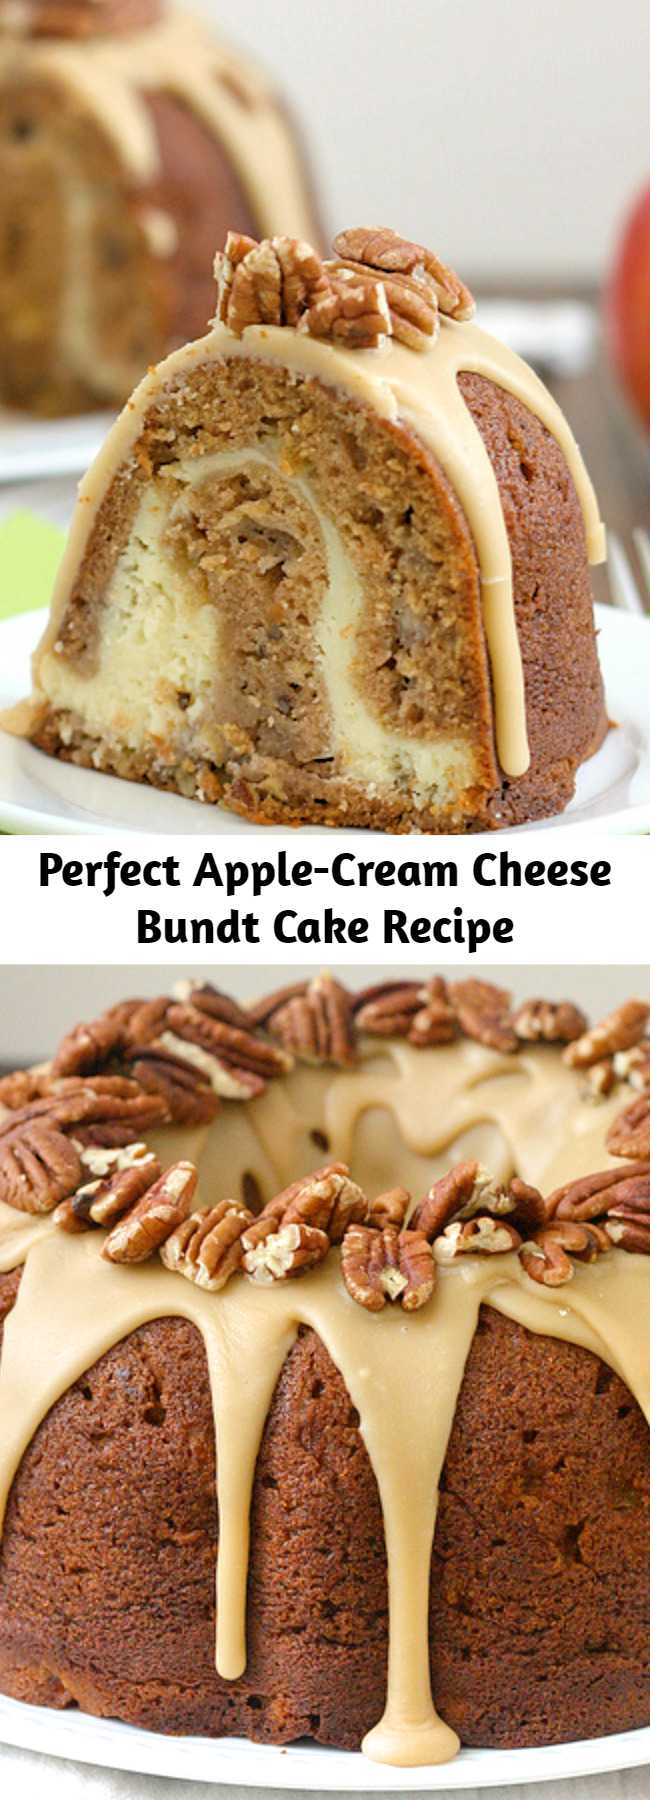 Perfect Apple-Cream Cheese Bundt Cake Recipe - This bundt was the perfect dessert to kick off apple season; I could not get enough! In addition to diced apples interspersed throughout the cake, there's also applesauce in the batter for double the apple goodness. The thick pocket of cream cheese in the center is to die for, but my favorite was the sweet praline frosting on top of the cake. Dig in for dessert, or enjoy a slice for breakfast - you can't go wrong either way.